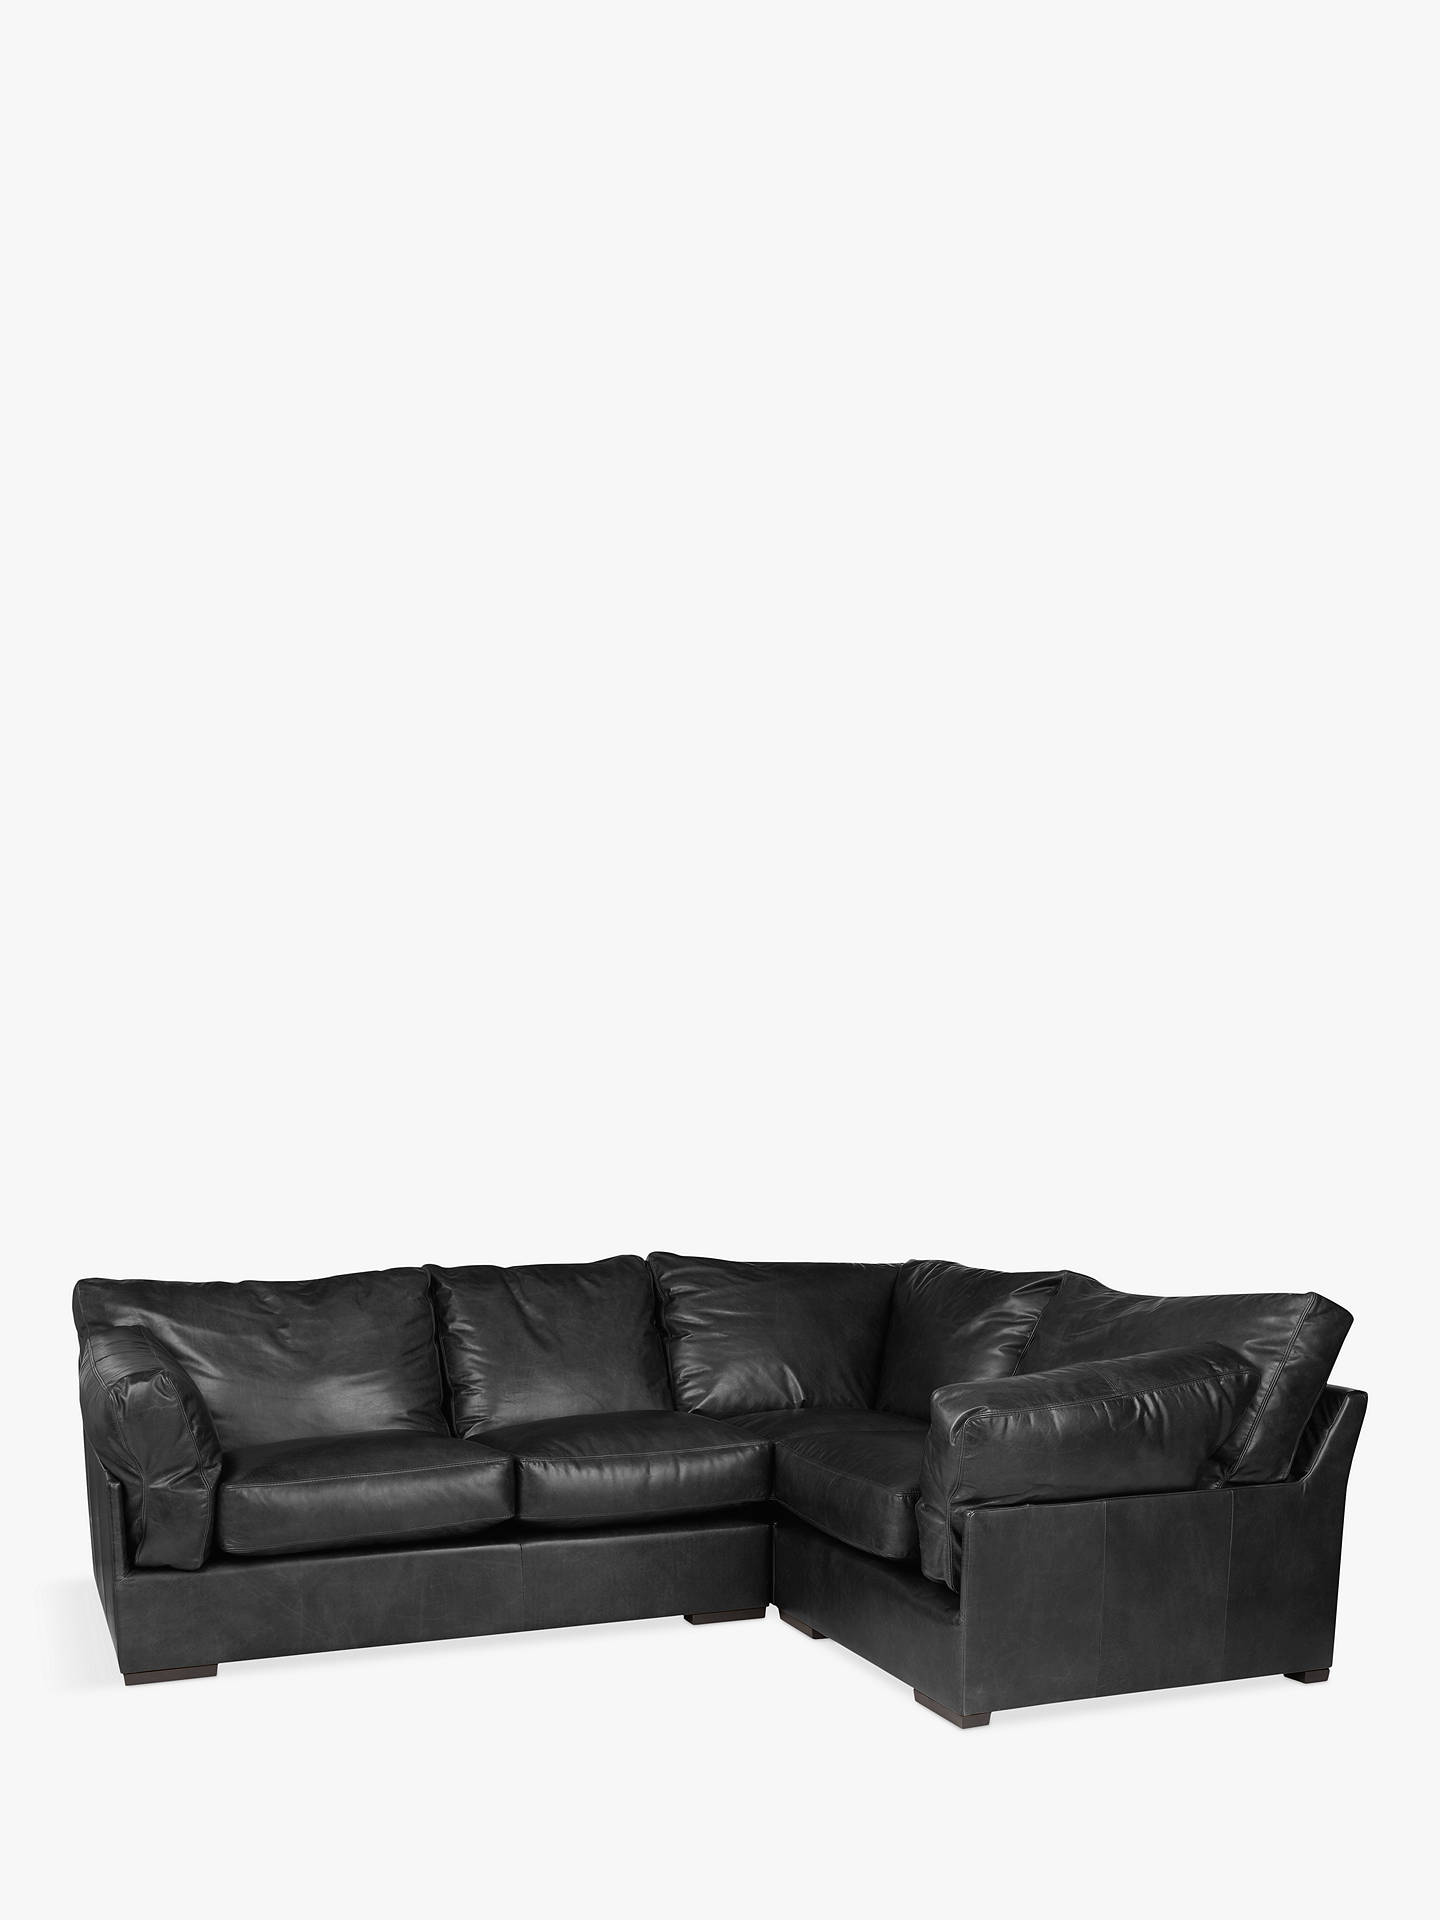 John Lewis & Partners Java RHF Leather Corner Sofa, Dark Leg, Contempo Black